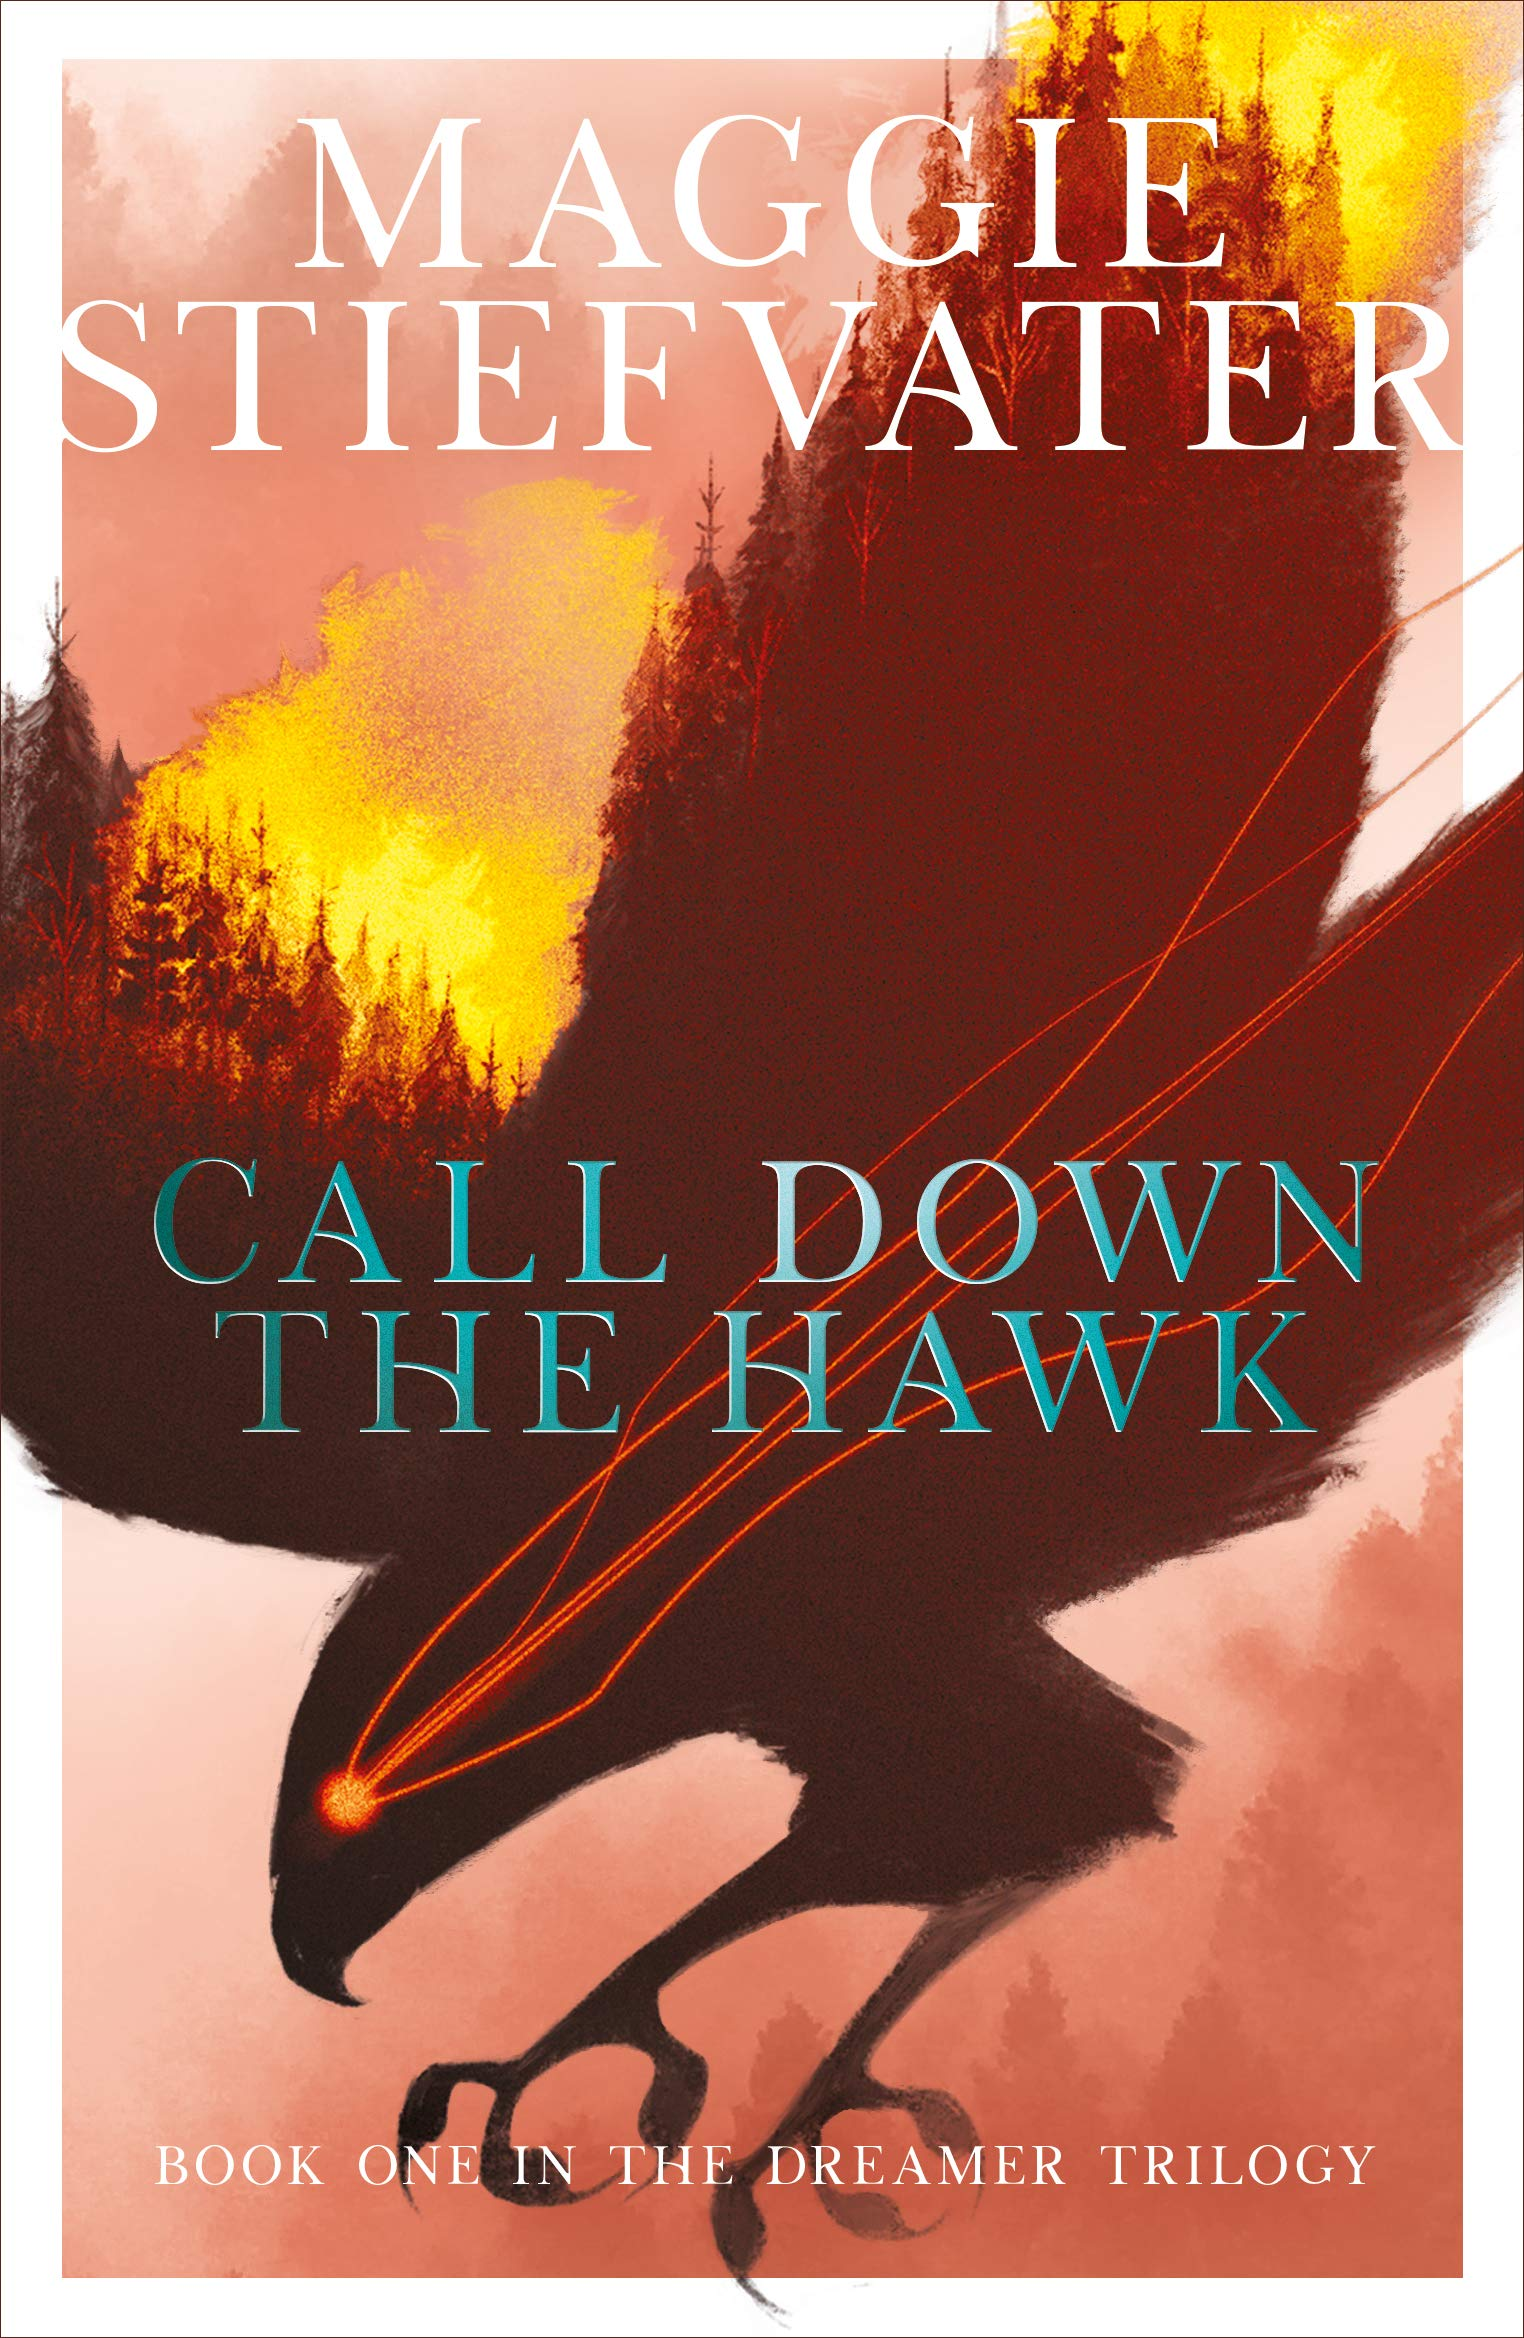 Image result for call down the hawk uk cover